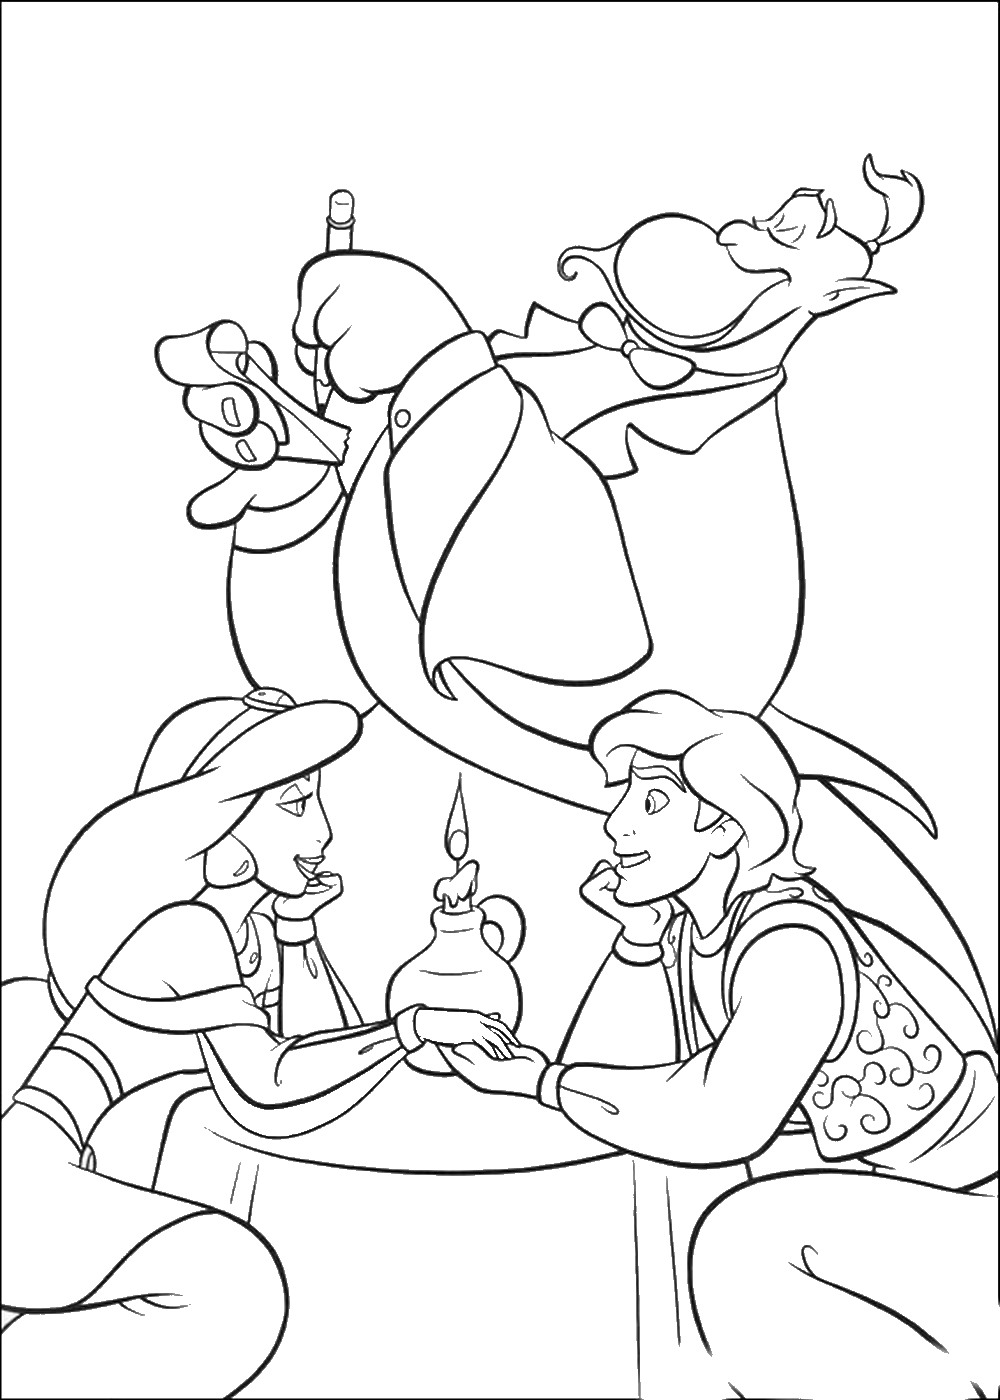 coloring pages aladdin aladdin activities for kids wonder kids aladdin coloring pages